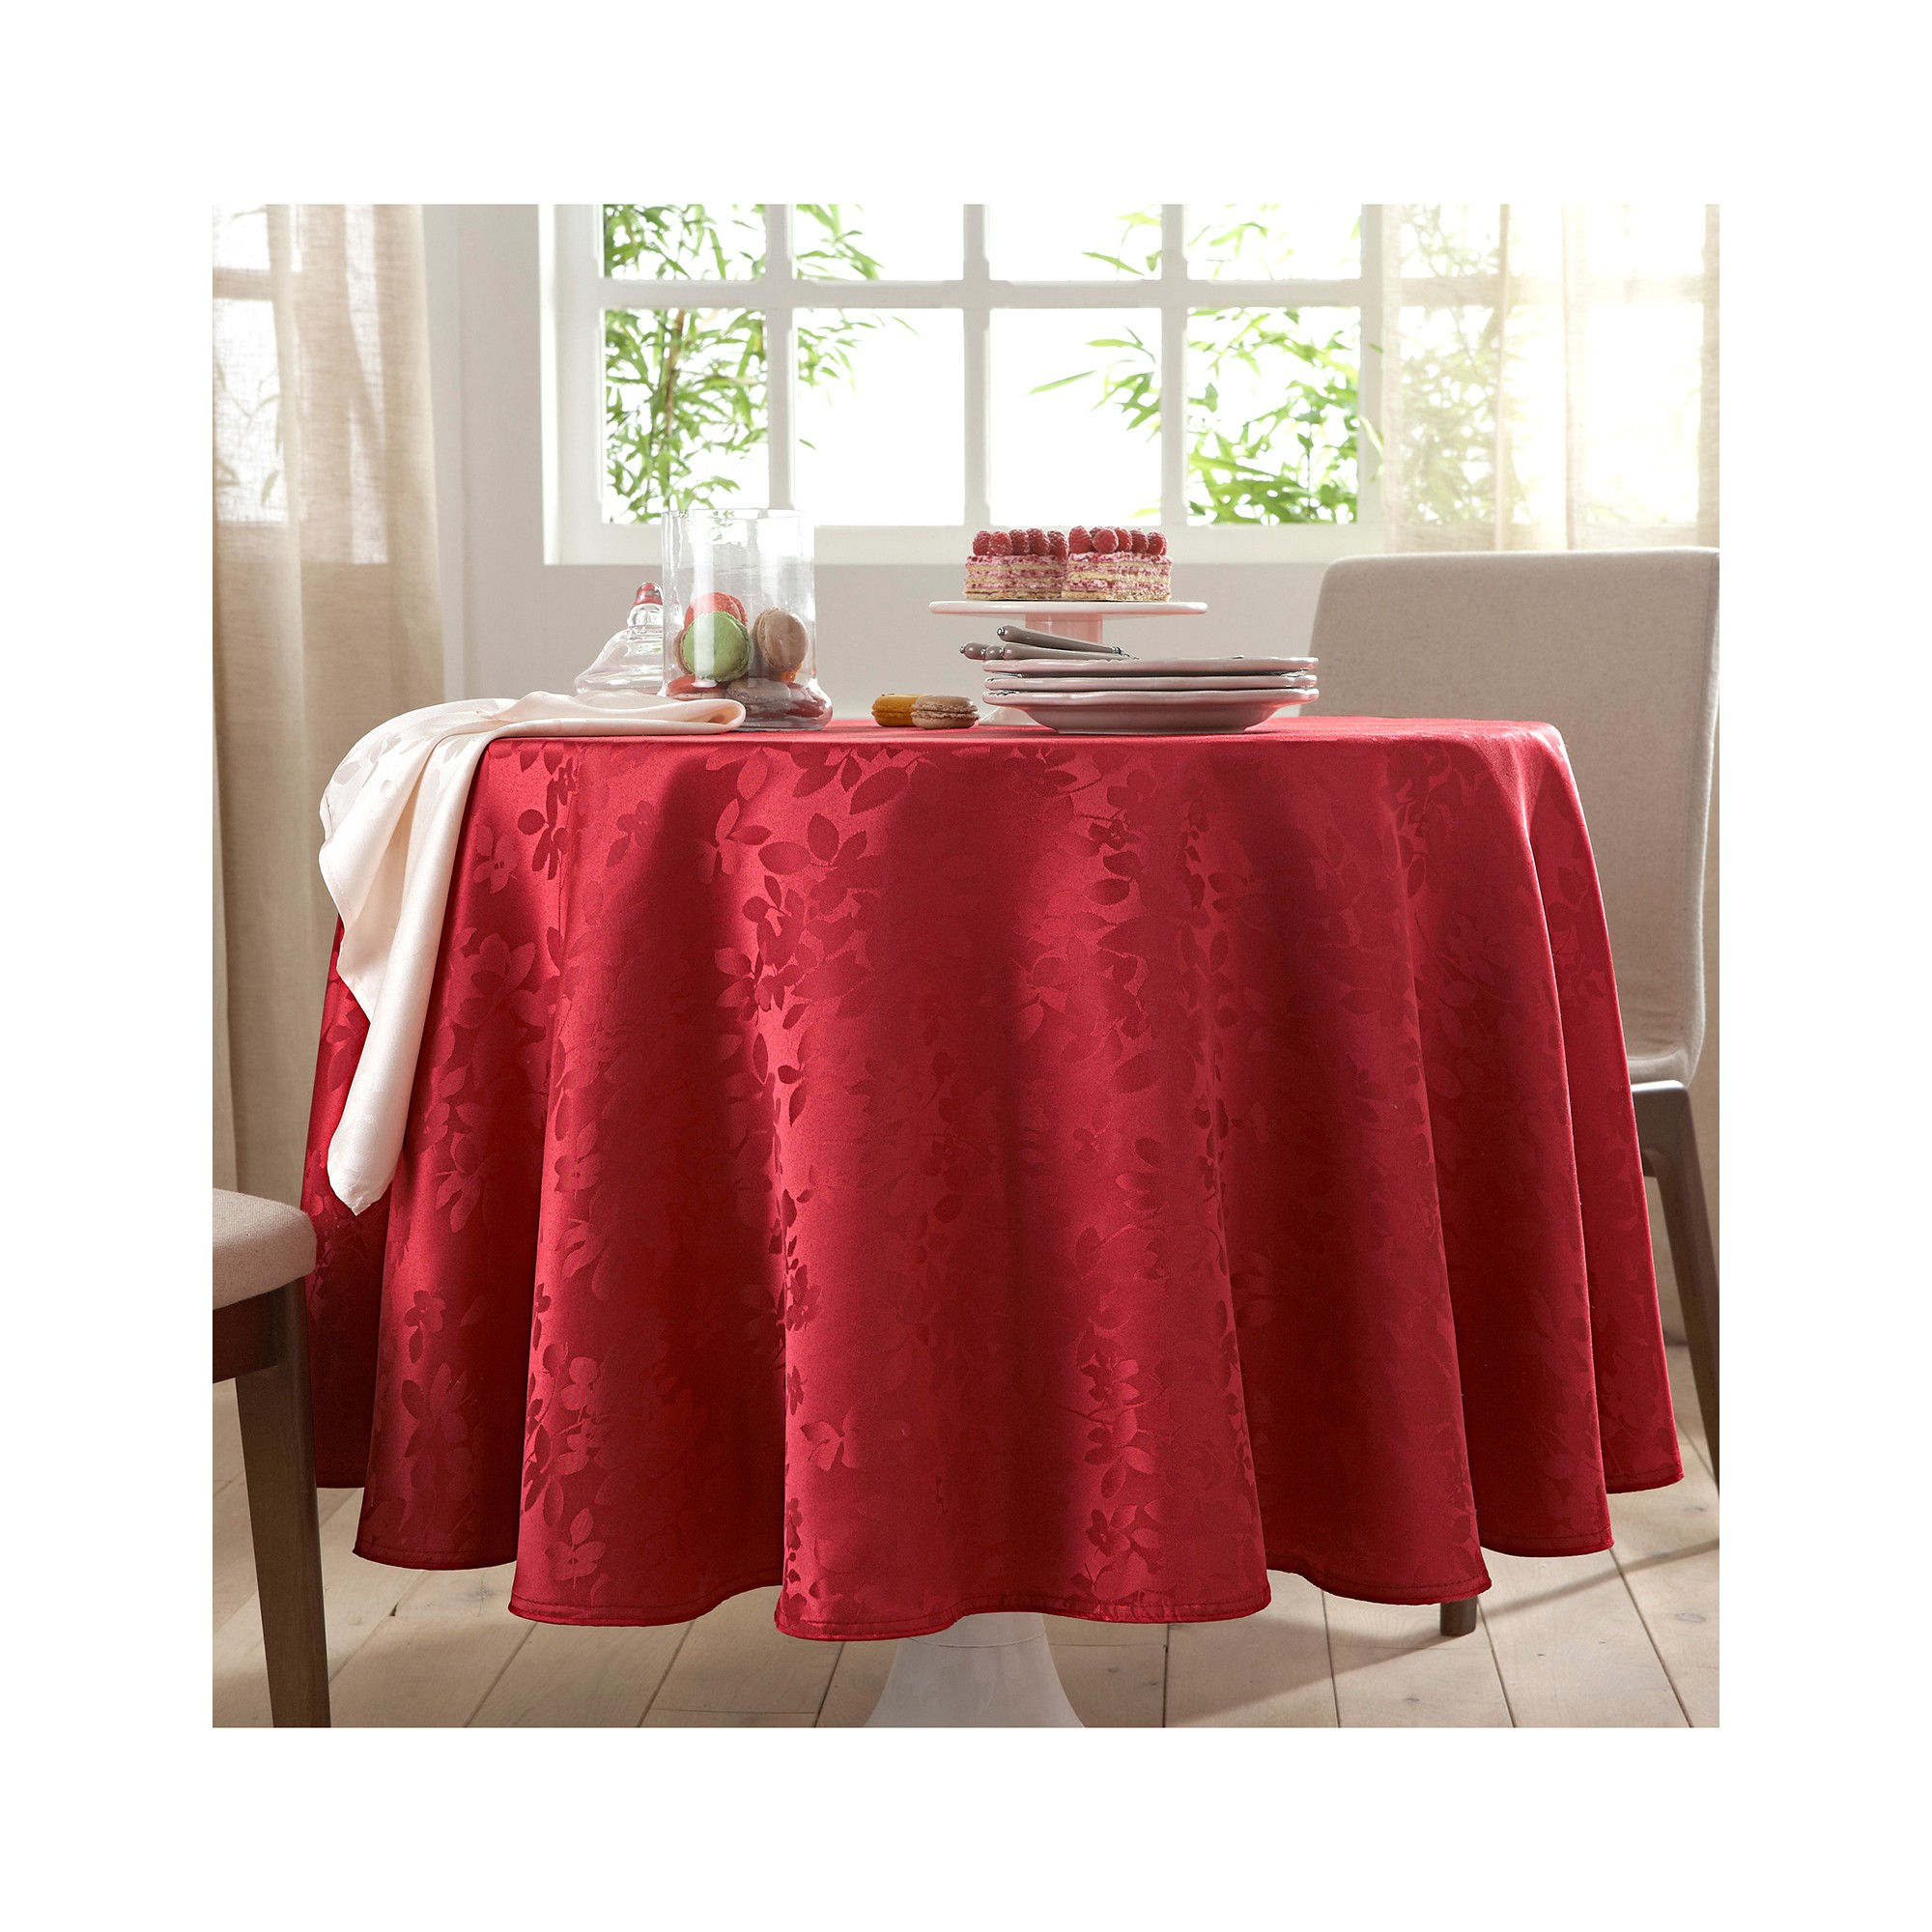 Nappe Rectangulaire Grande Taille Nappe Grande Taille